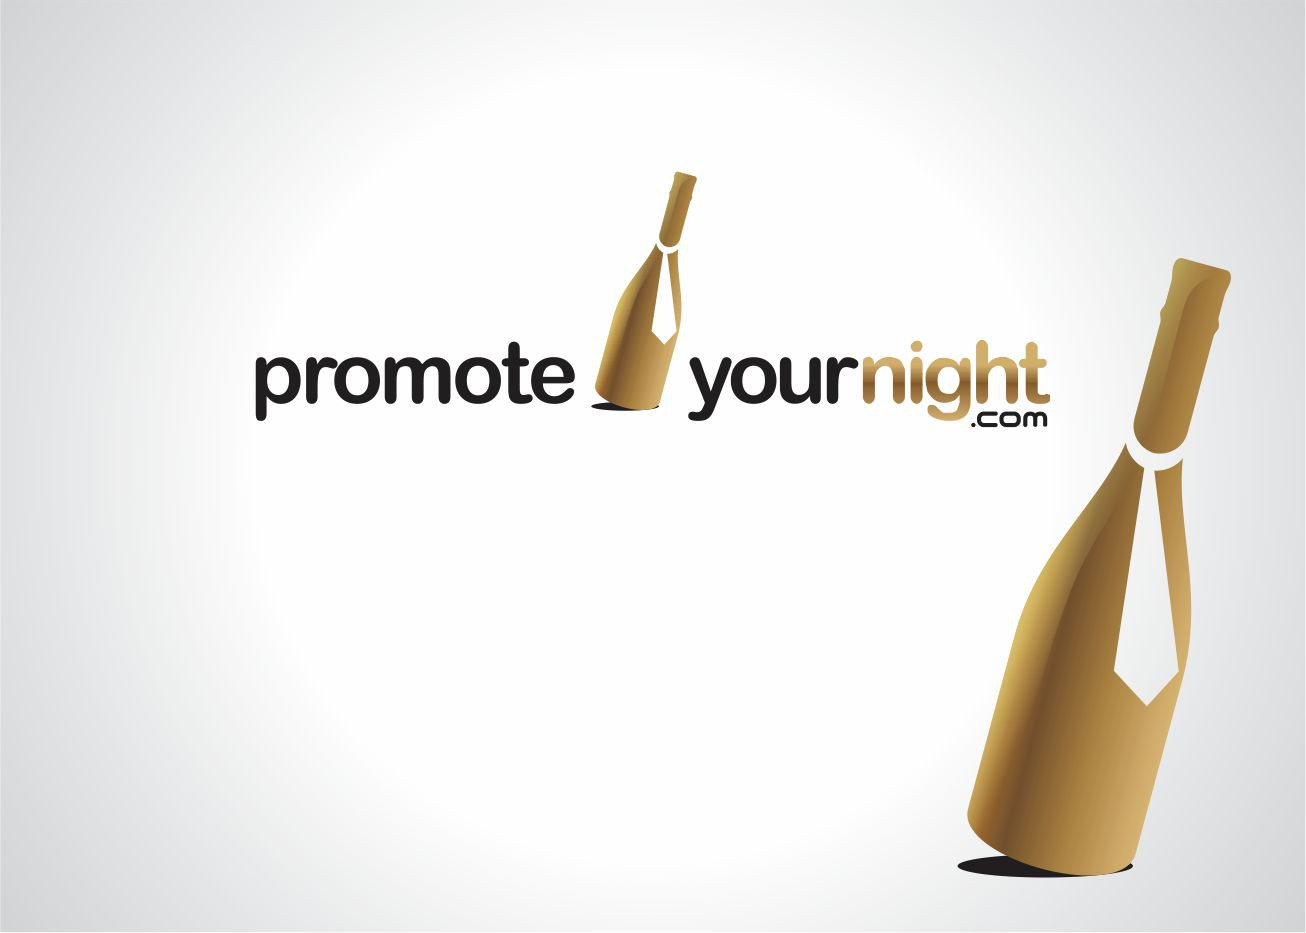 New logo wanted for promoteyournight